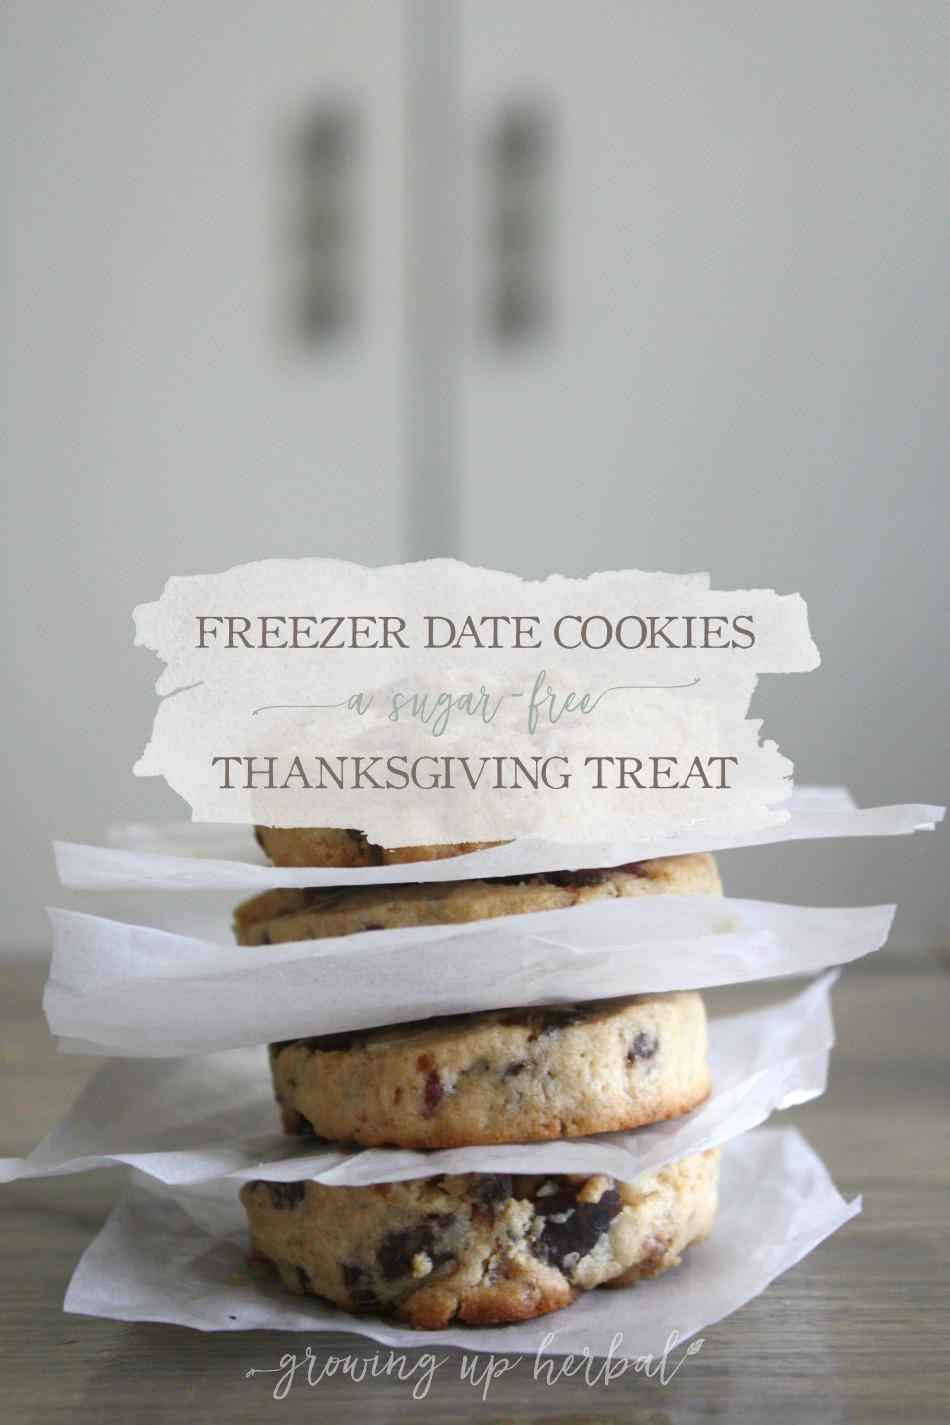 Freezer Date Cookies: A Sugar-Free Thanksgiving Treat | Growing Up Herbal | Delicious, healthy freezer date cookies, perfect for making holiday memories.